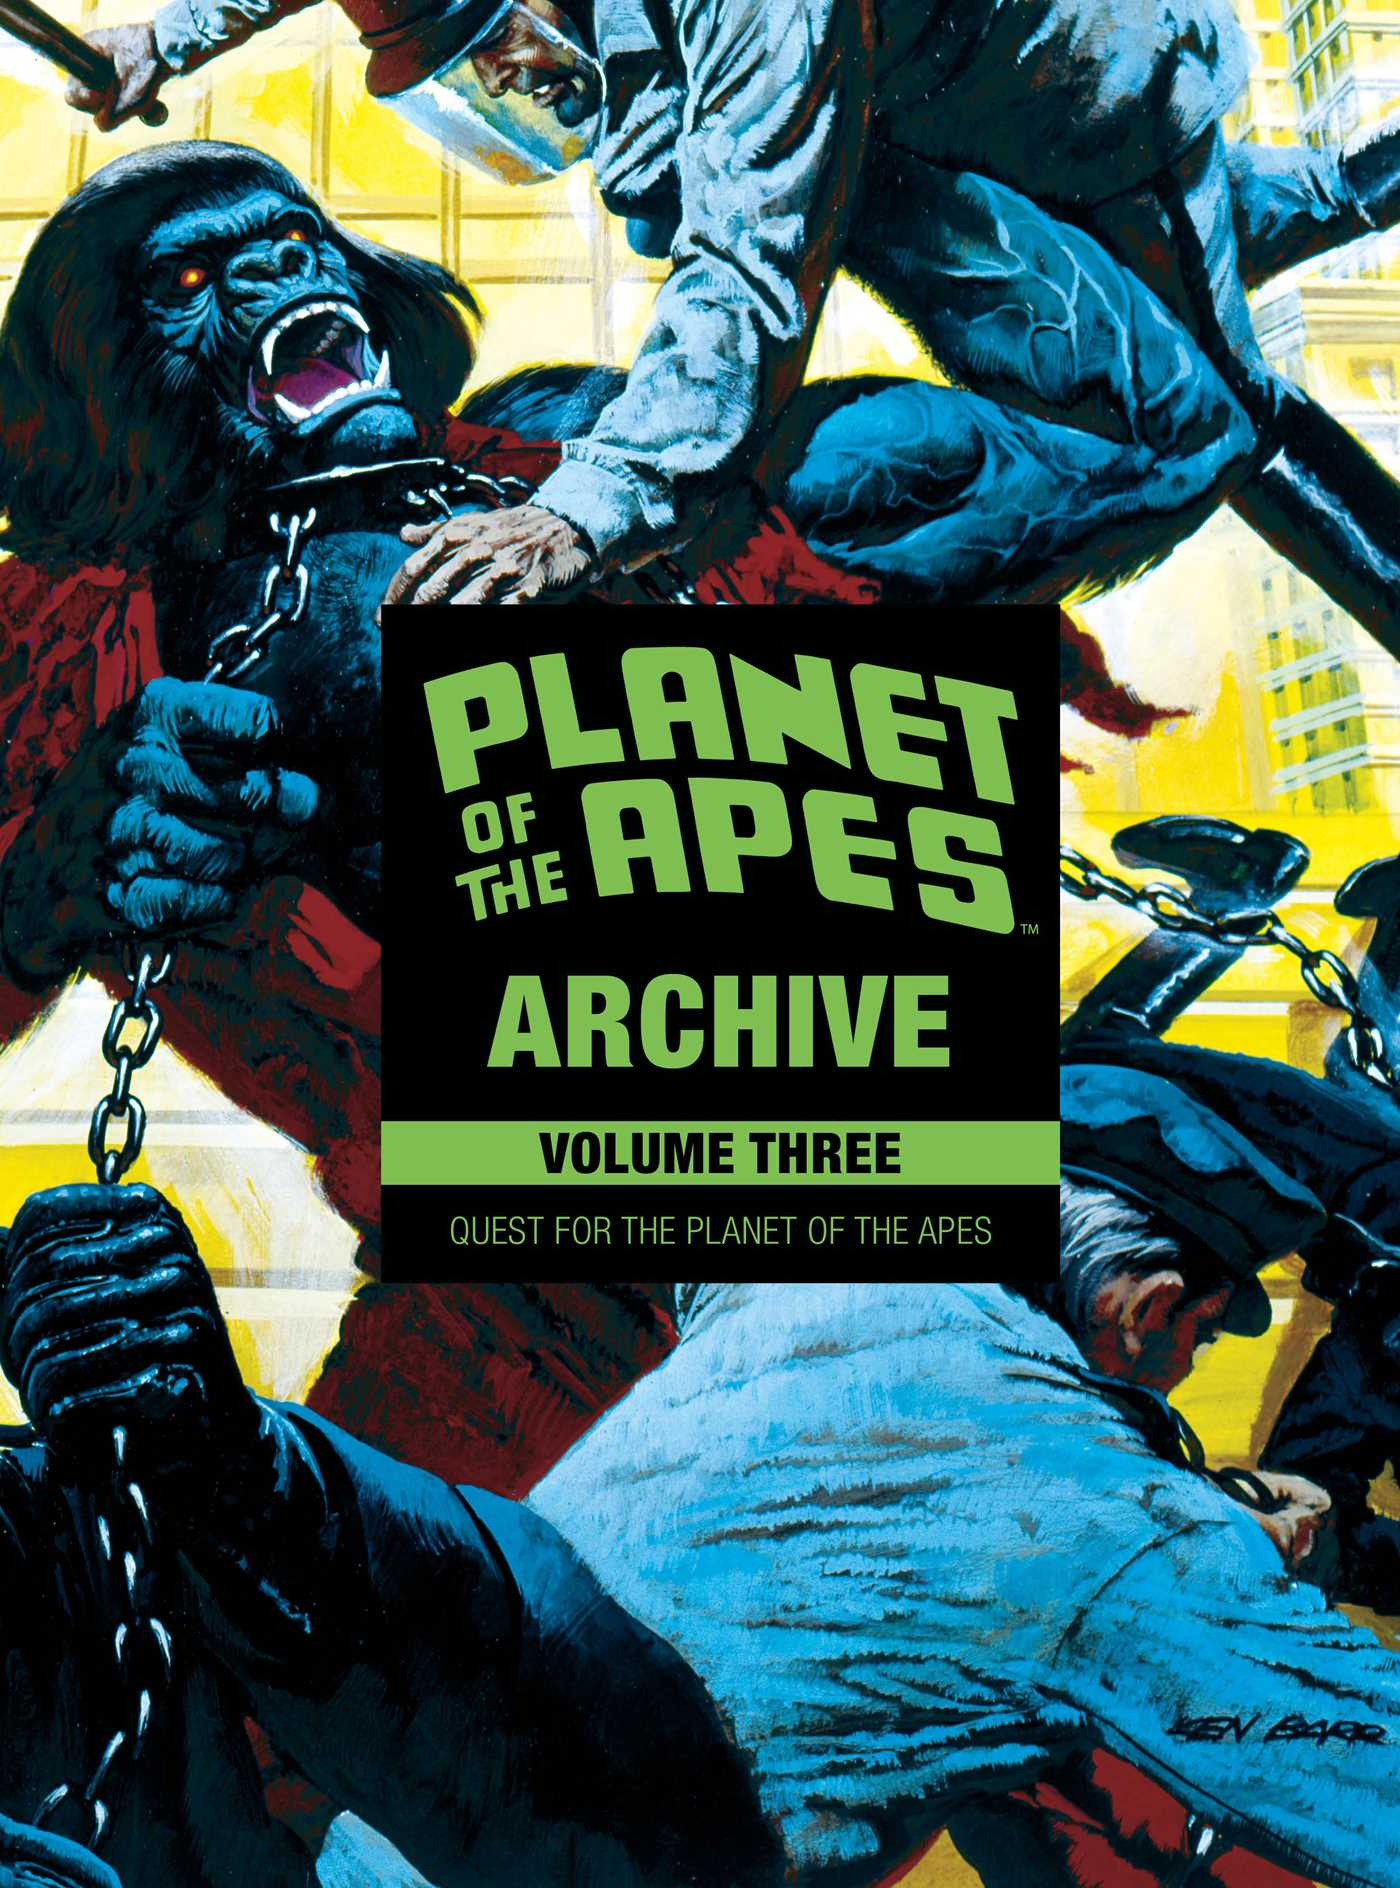 Planet of the apes archive vol 3 9781684151387 hr